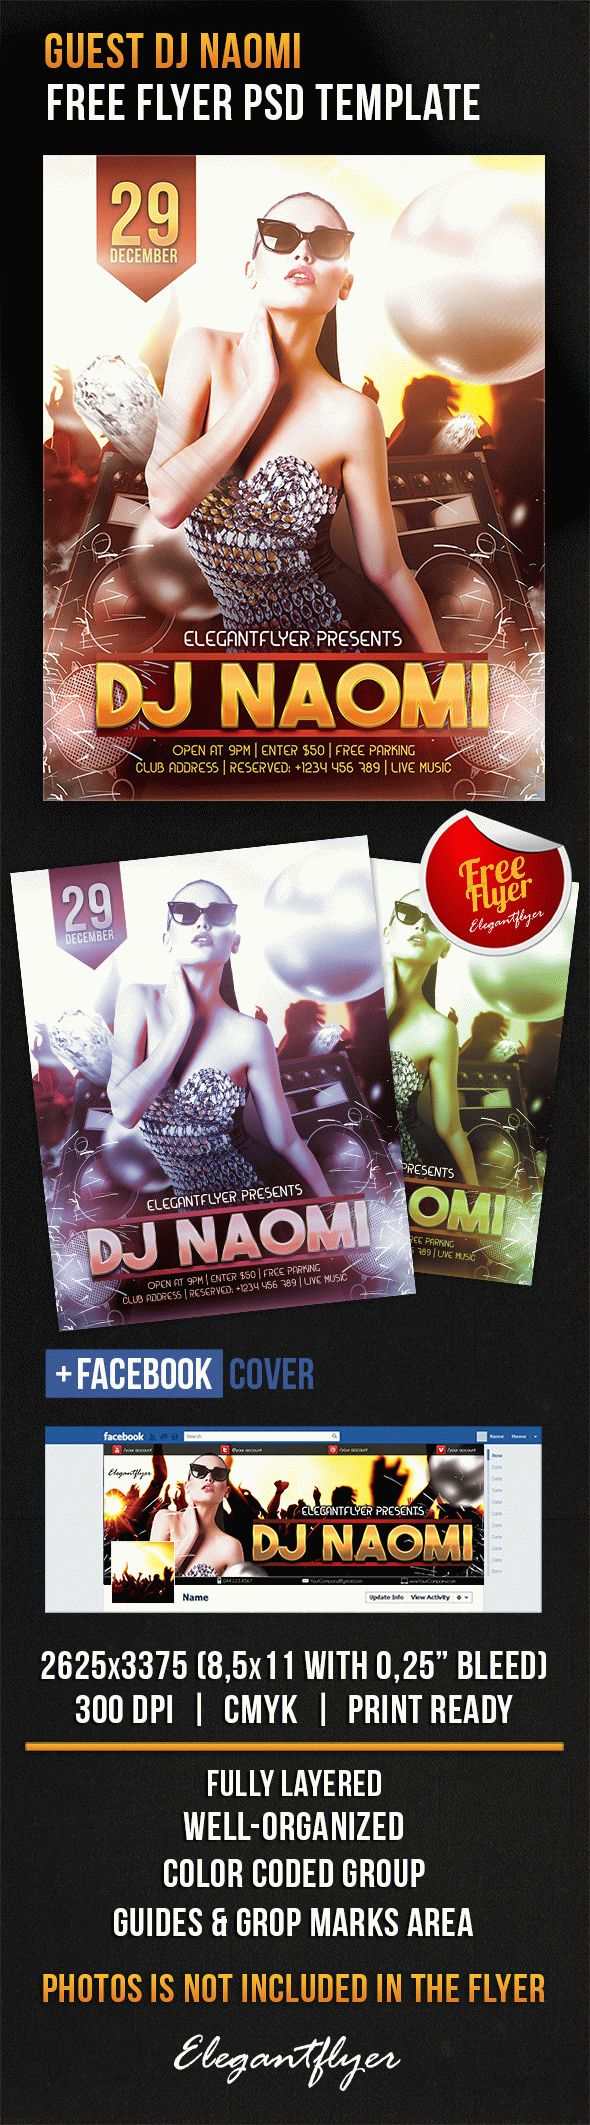 Guest DJ Naomi – Free Flyer PSD Template + Facebook Cover